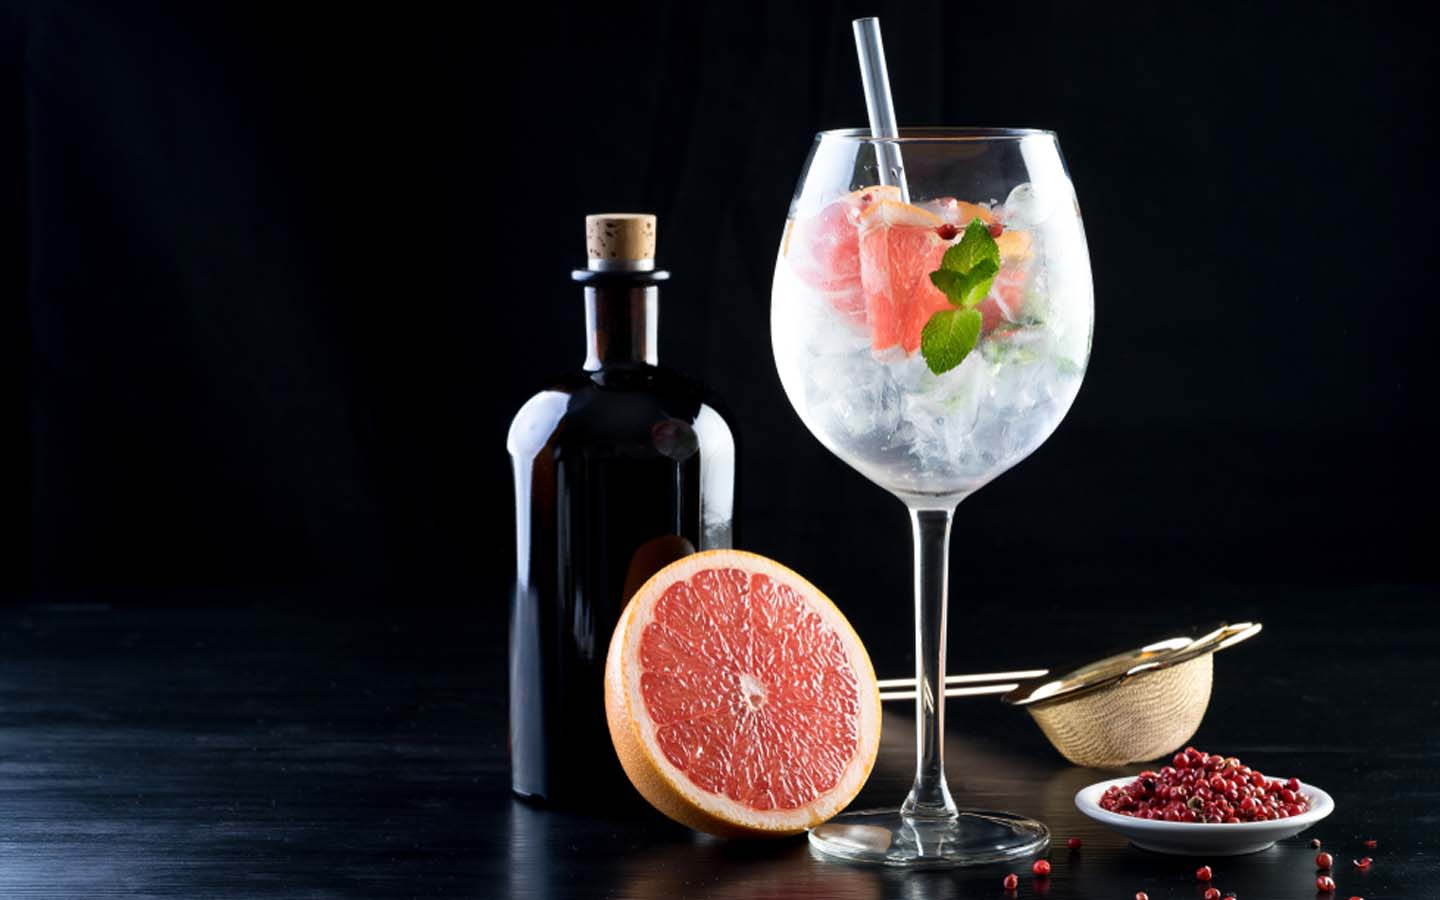 Gin and tonic with a blood orange and wine bottle